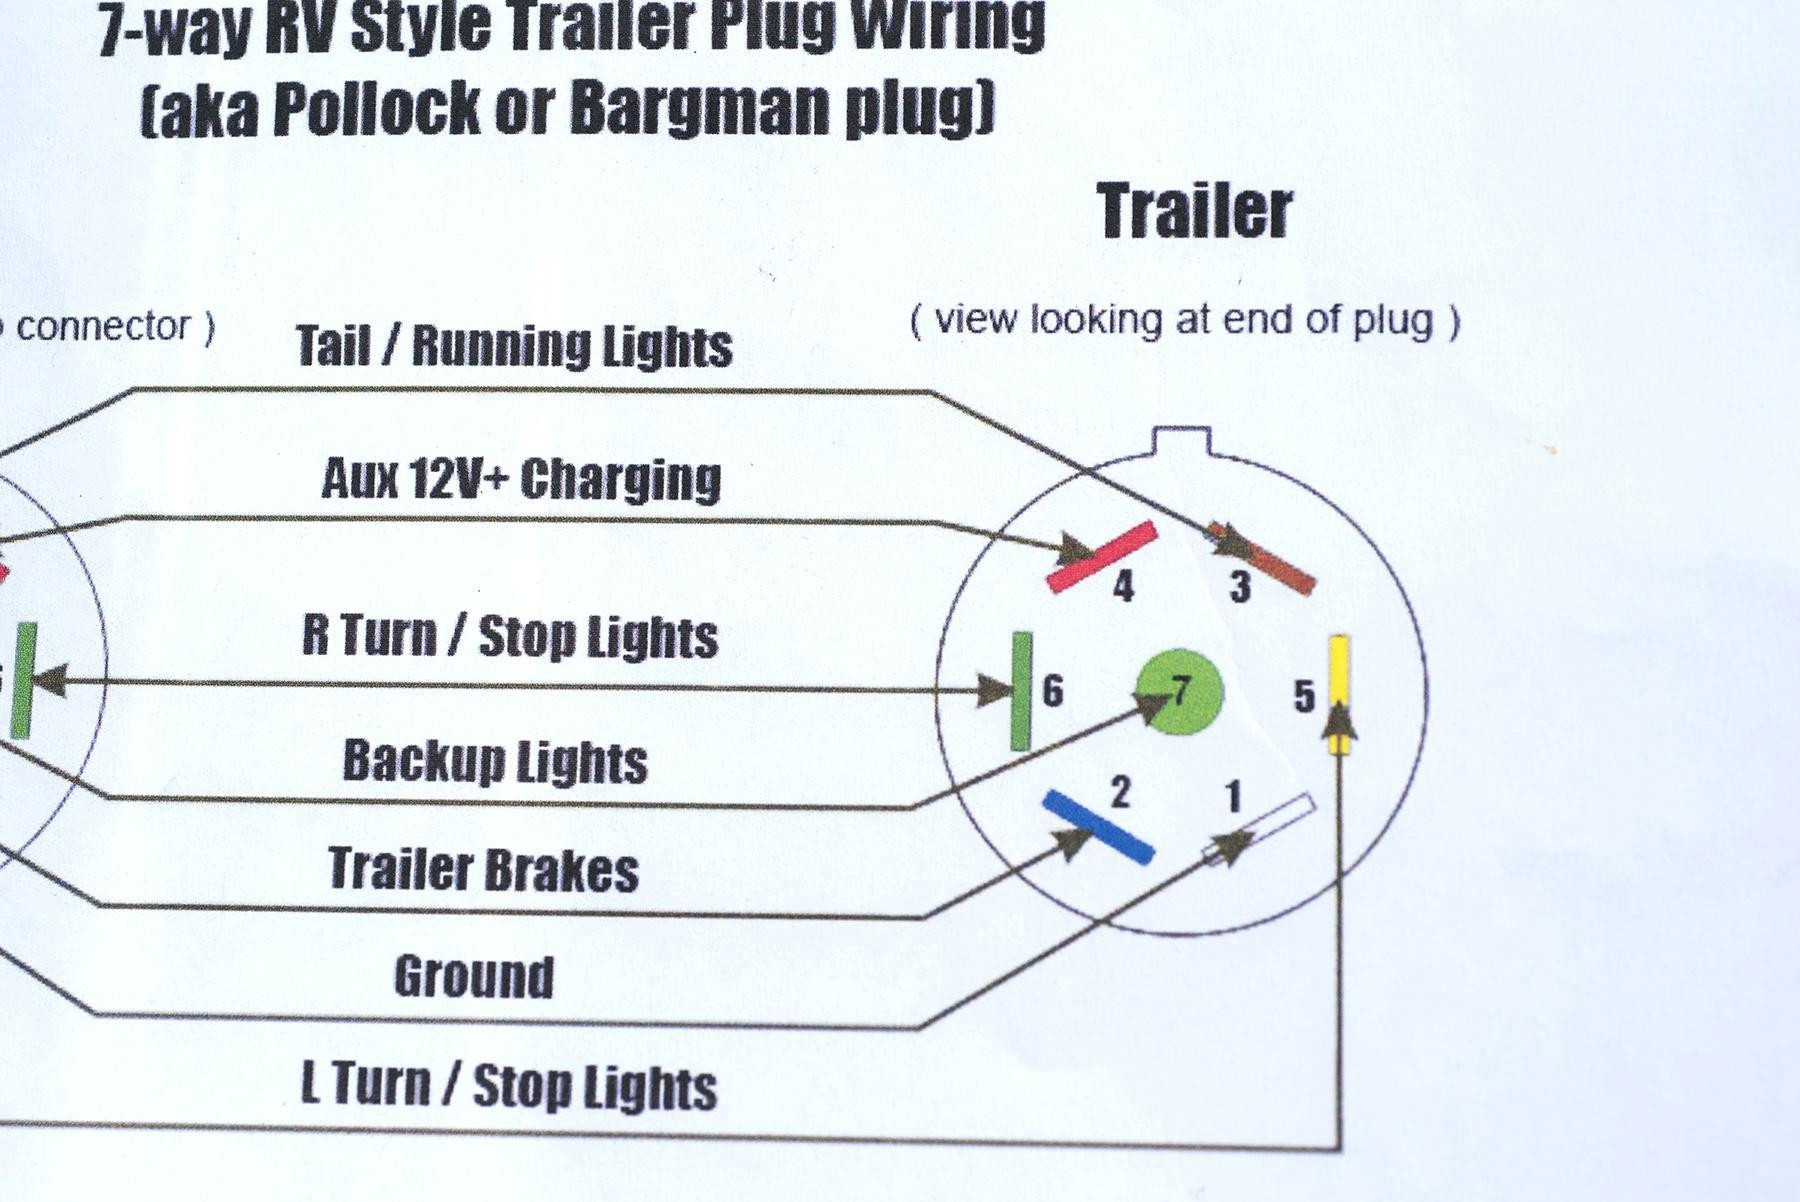 7 Way Wiring Diagram - Wiring Diagrams Thumbs - Trailer Plug Wiring Diagram 5 Way